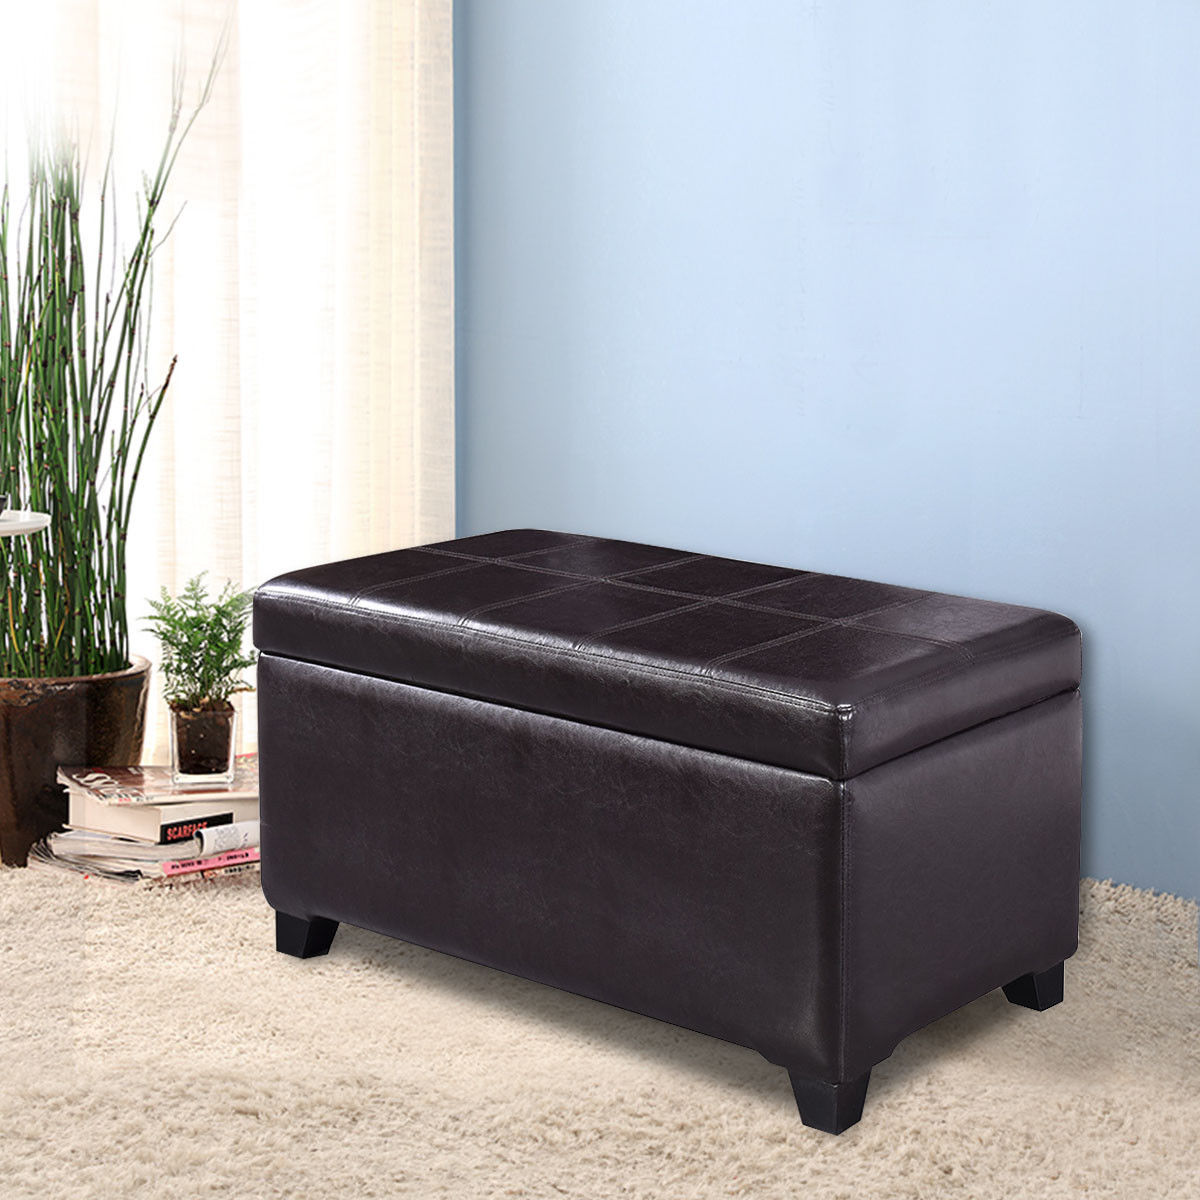 Costway PU Leather Storage Bench Lift Top Organizer Ottoman Furniture Seat Footstools by Costway